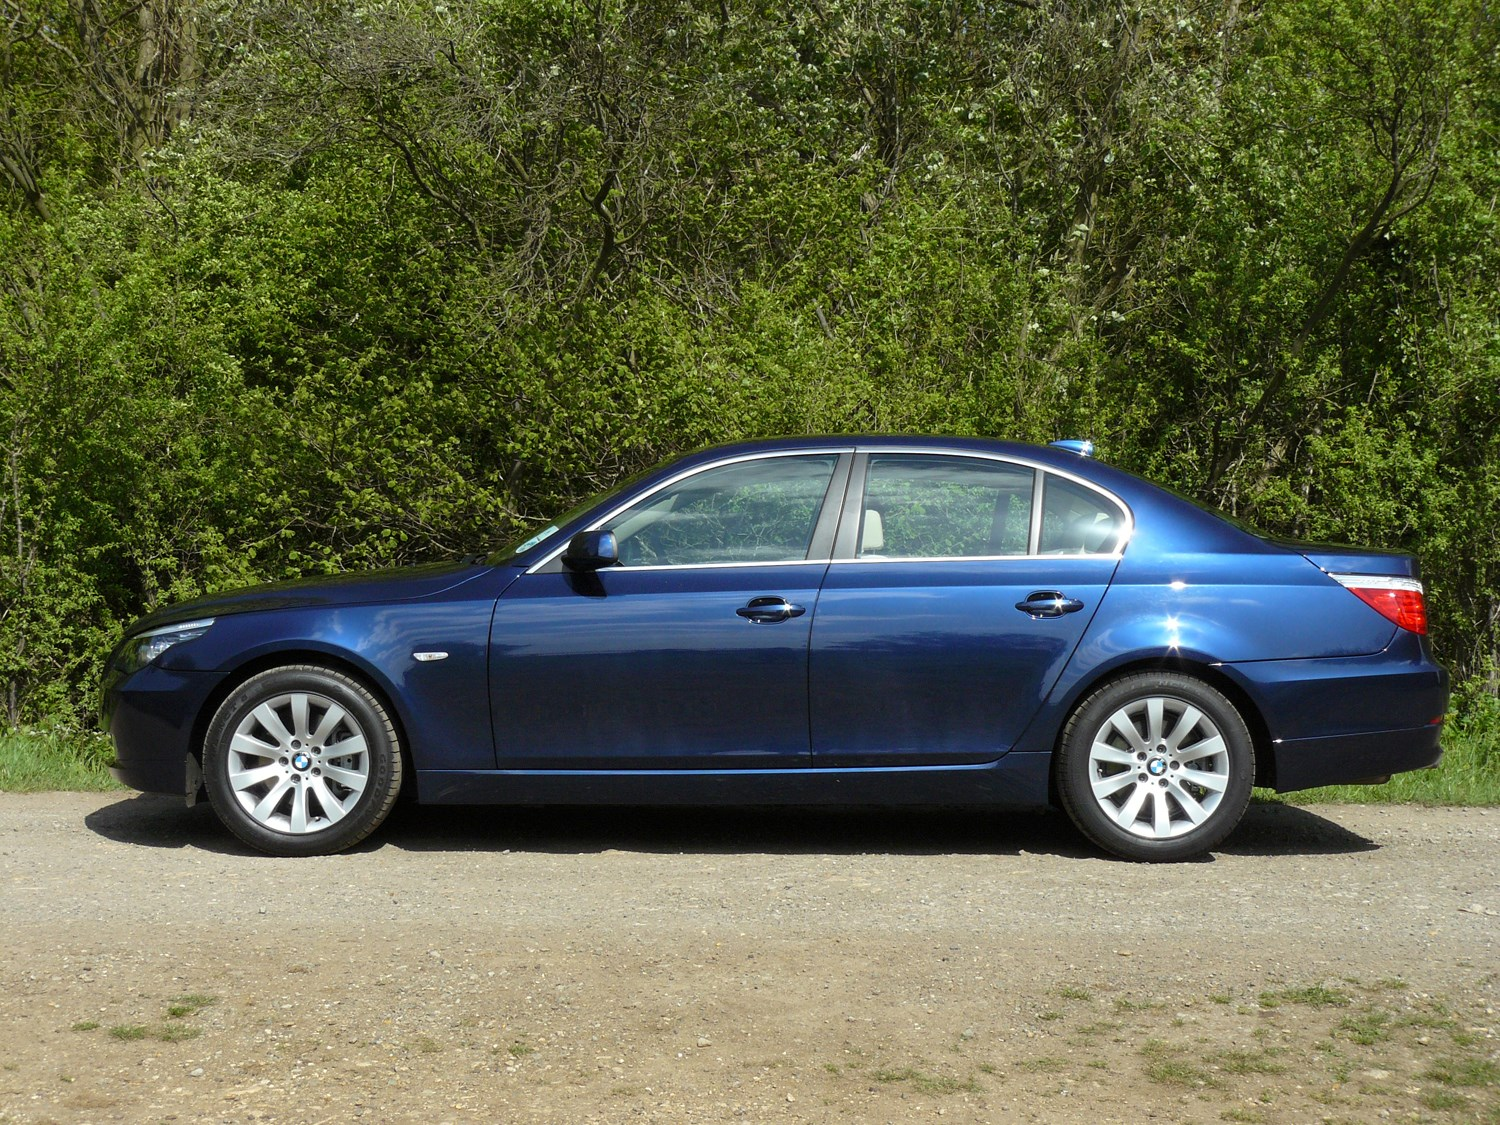 Used BMW 5-Series Saloon (2003 - 2010) Review | Parkers